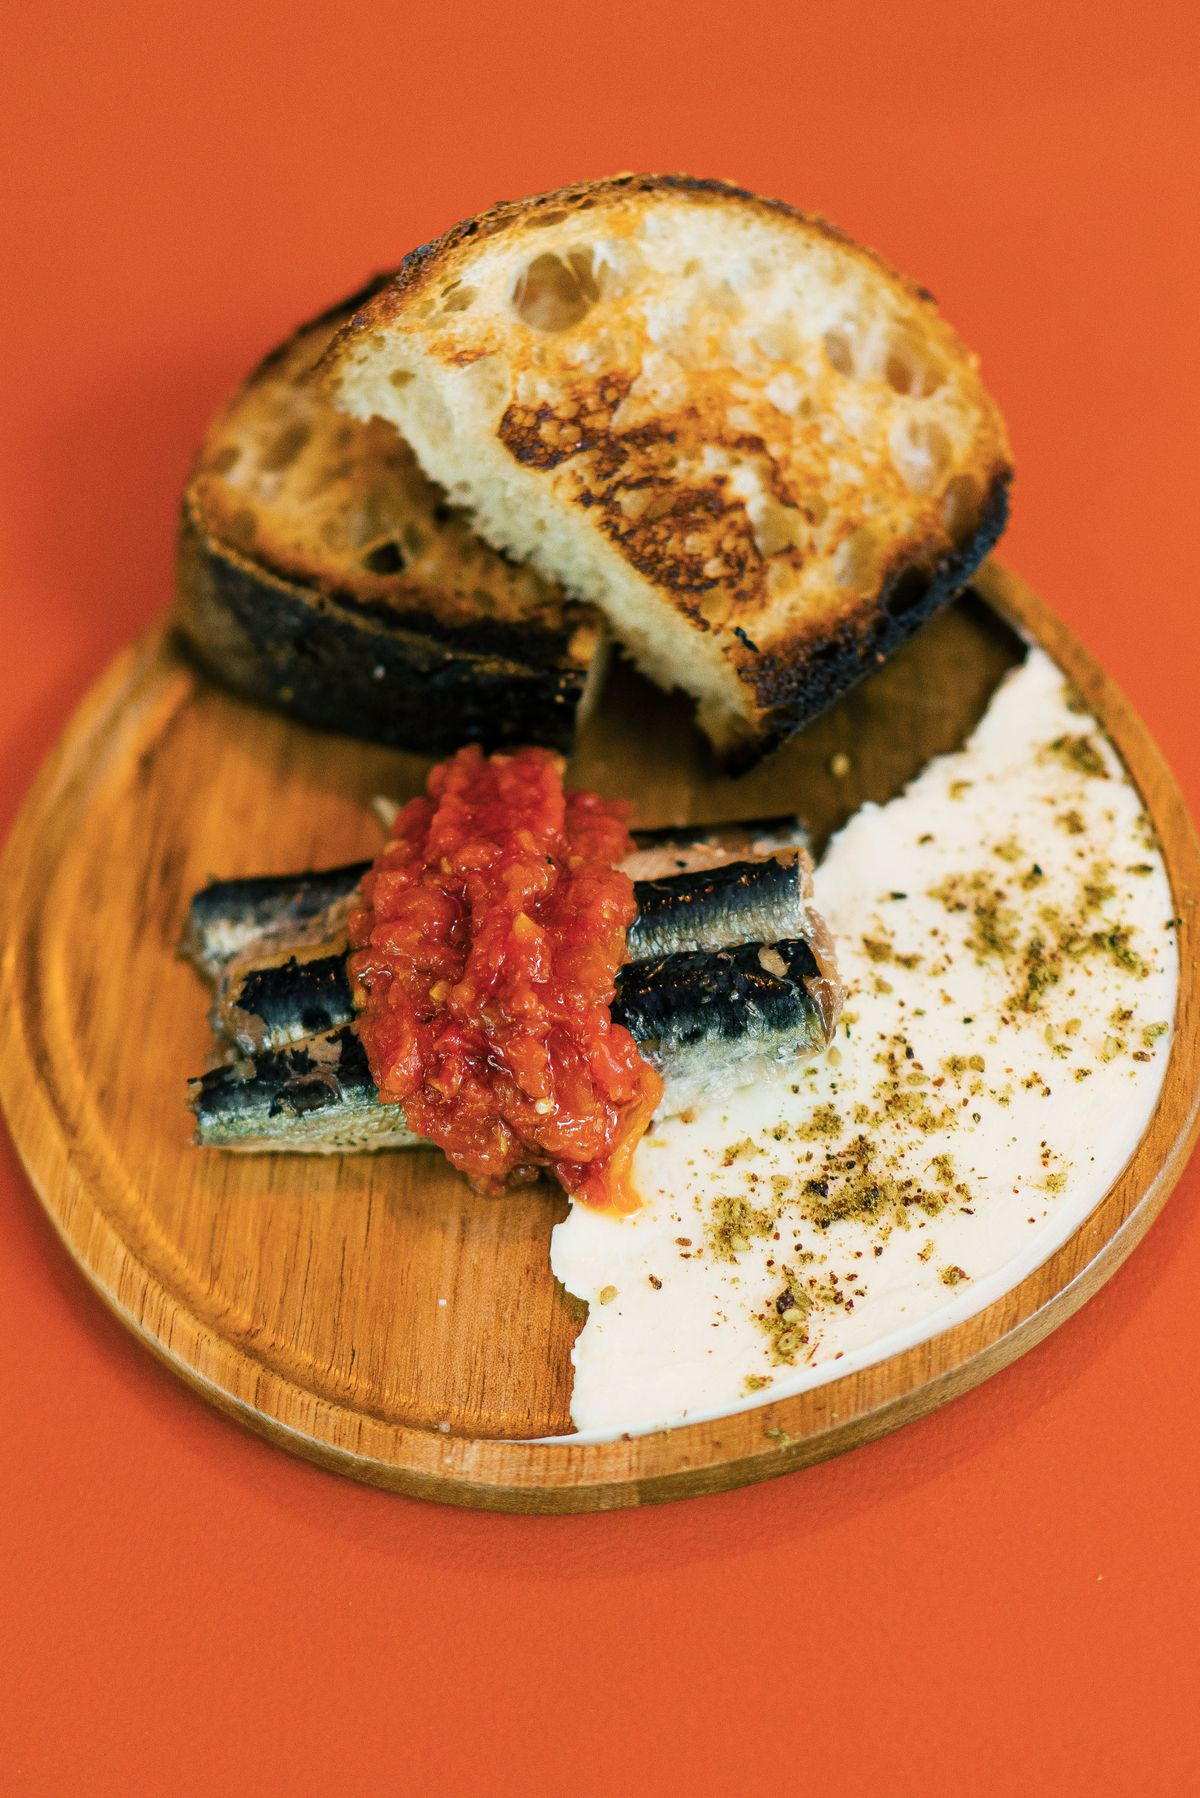 anchovies on a wooden plate with bread on a red background